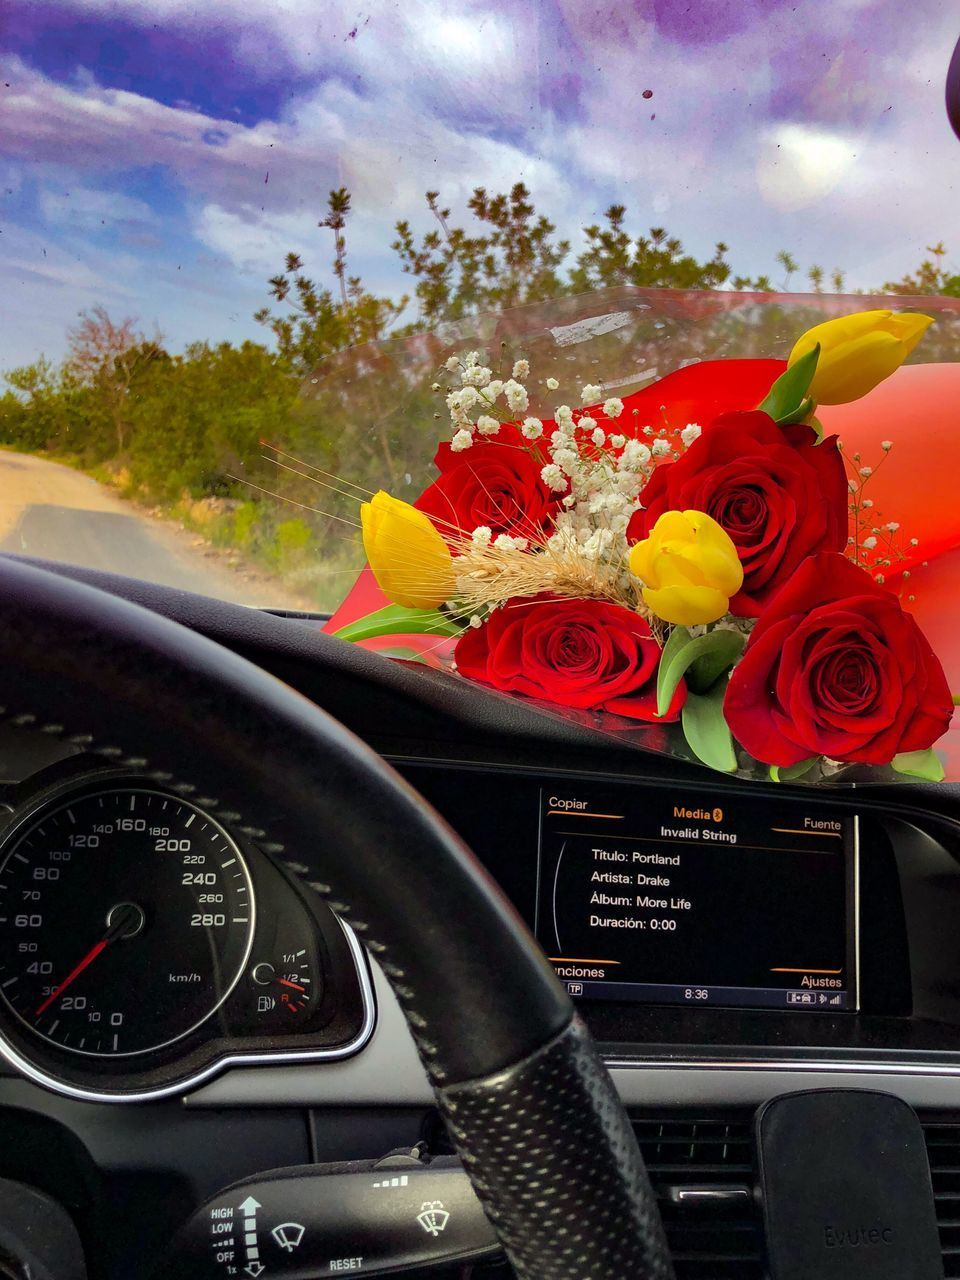 mode of transportation, plant, flower, transportation, flowering plant, control panel, car, dashboard, land vehicle, vehicle interior, nature, car interior, motor vehicle, freshness, glass - material, close-up, windshield, beauty in nature, no people, fragility, flower head, outdoors, bouquet, flower arrangement